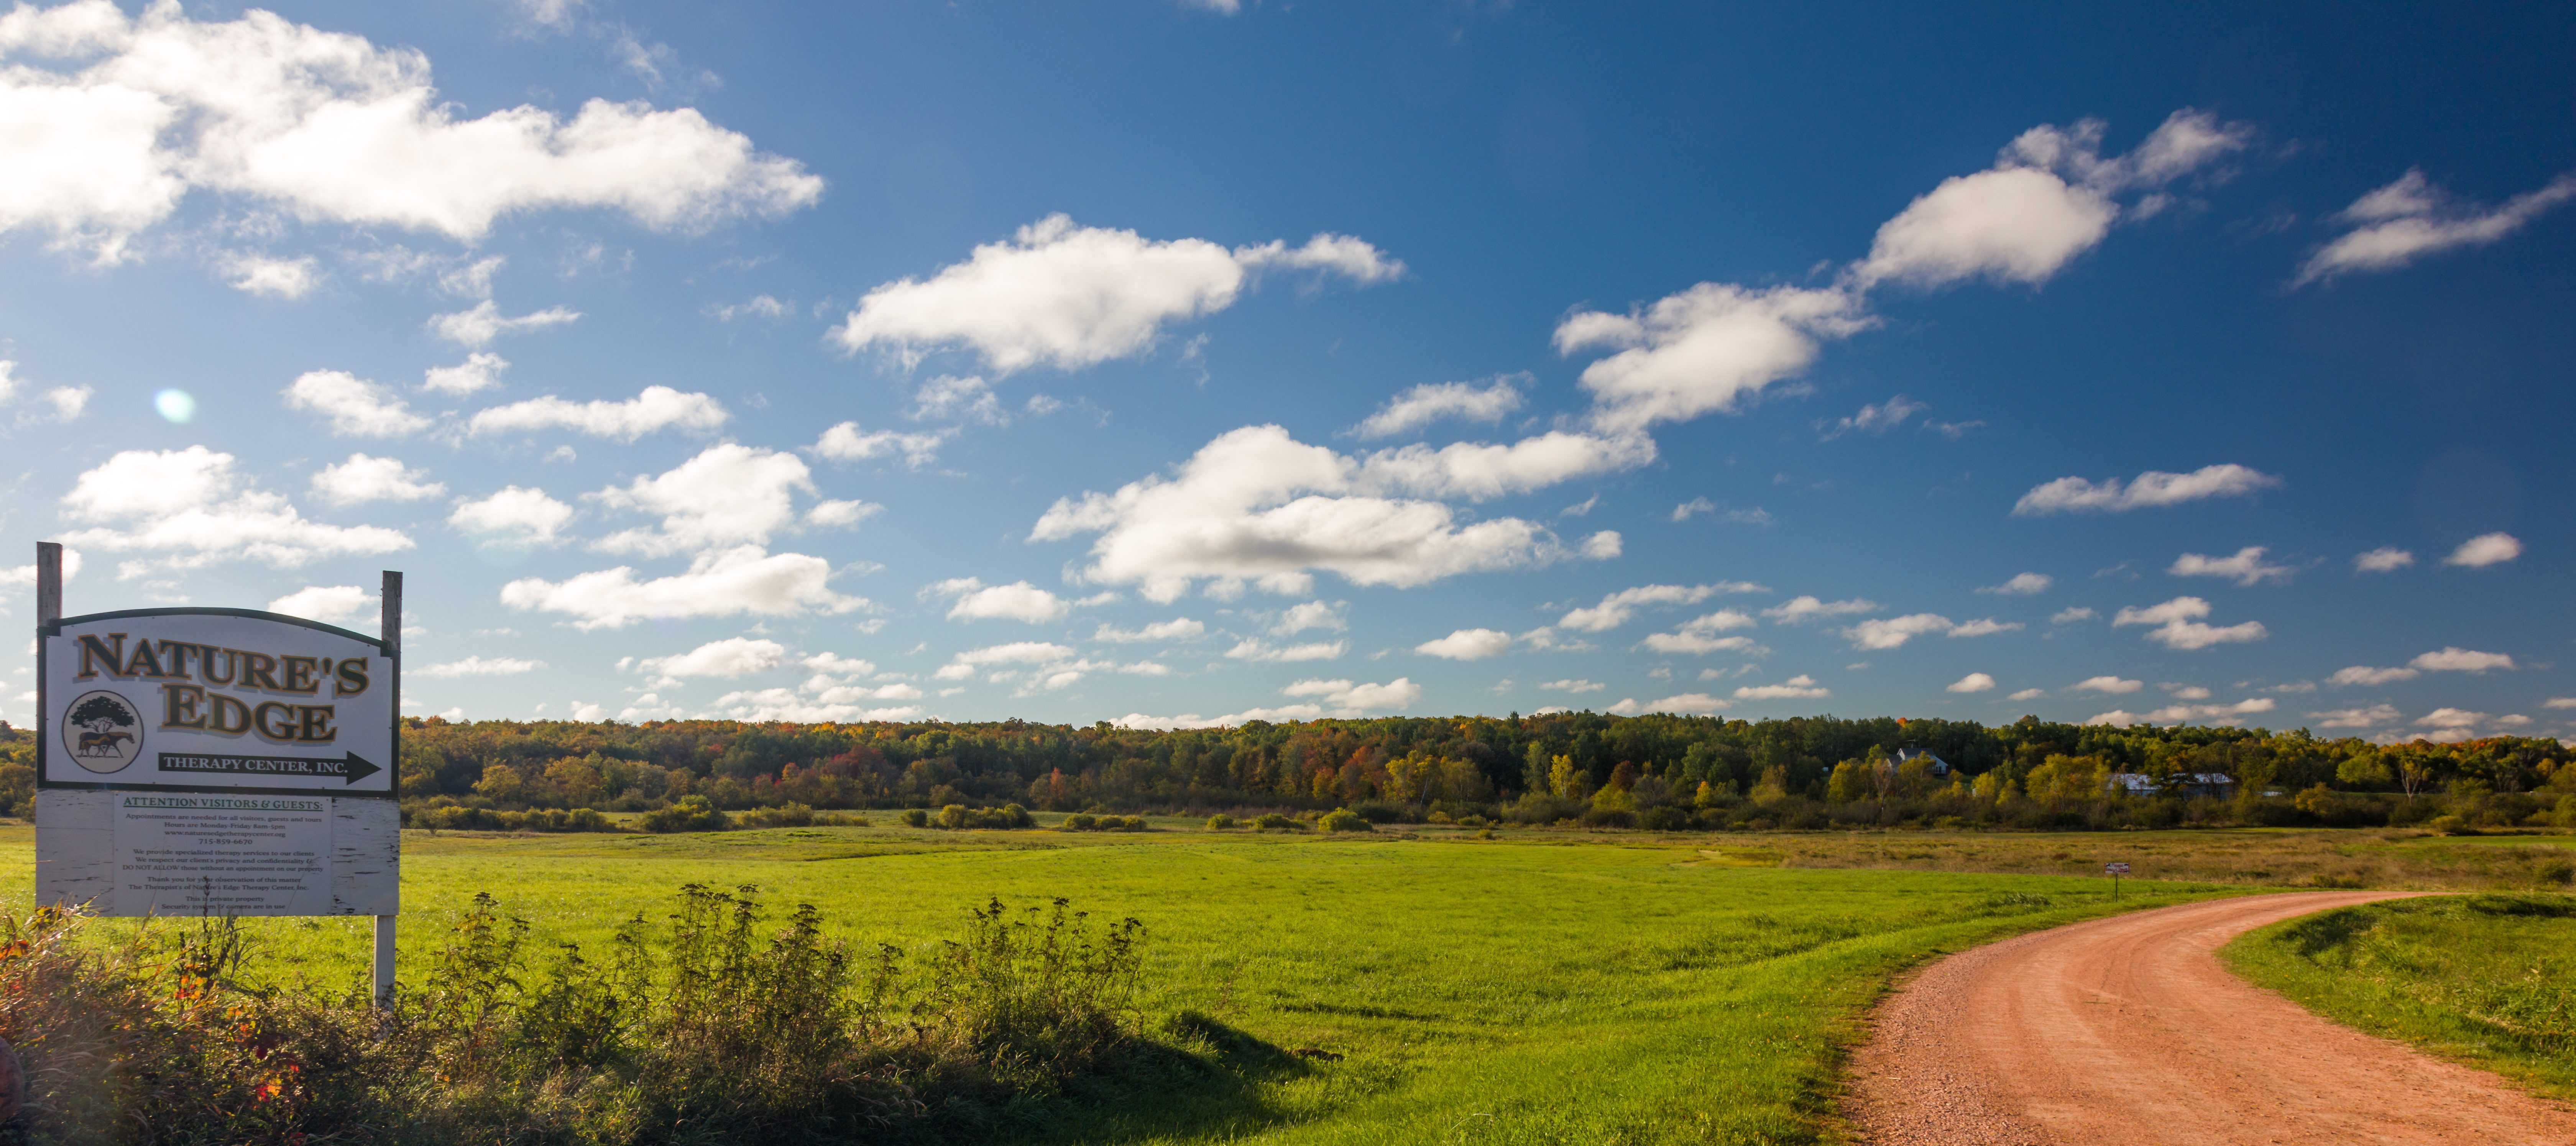 A shot of blue skies, a winding dirt road, and a white sign that says 'Nature's Edge Therapy Center, I nc.'